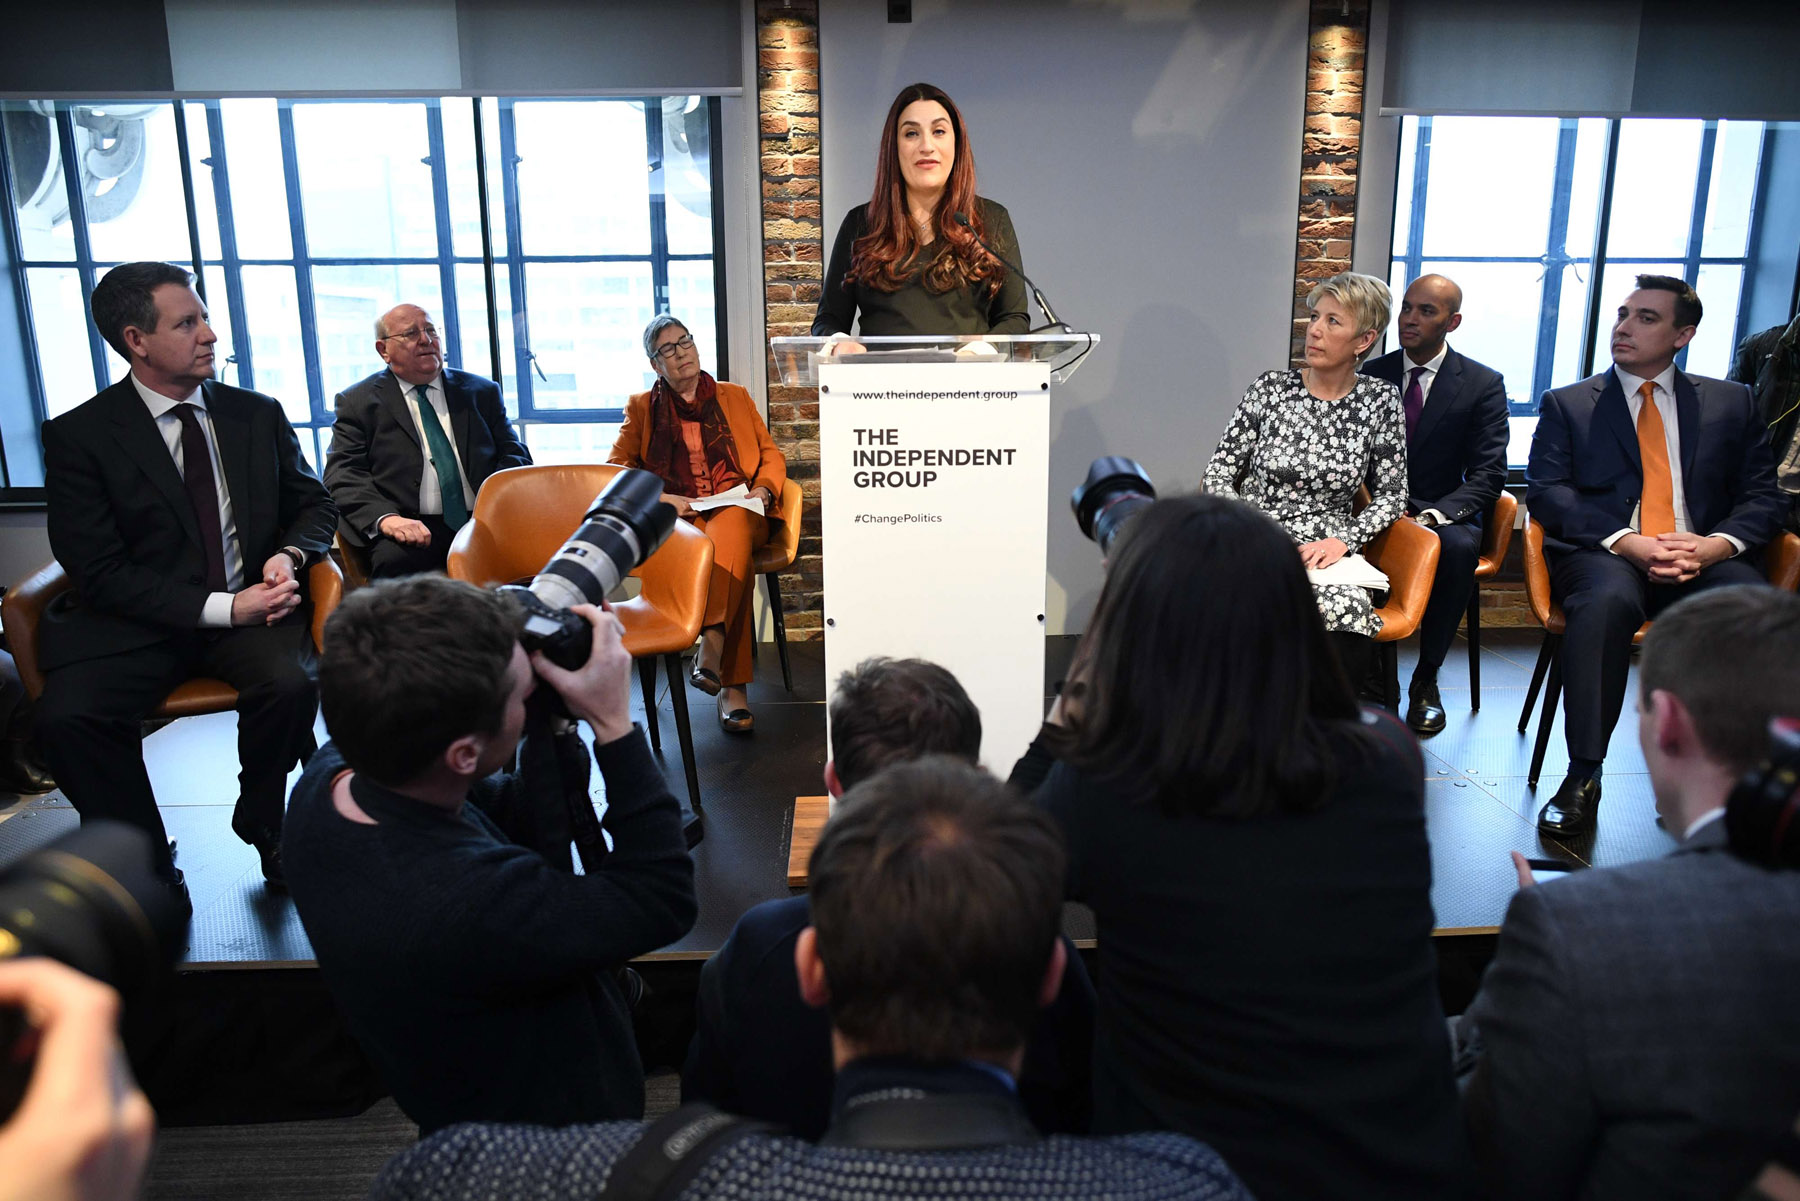 Labour MP Luciana Berger (C) who has announced her resignation during a press conference at County Hall, on February 18, 2019. (DPA)